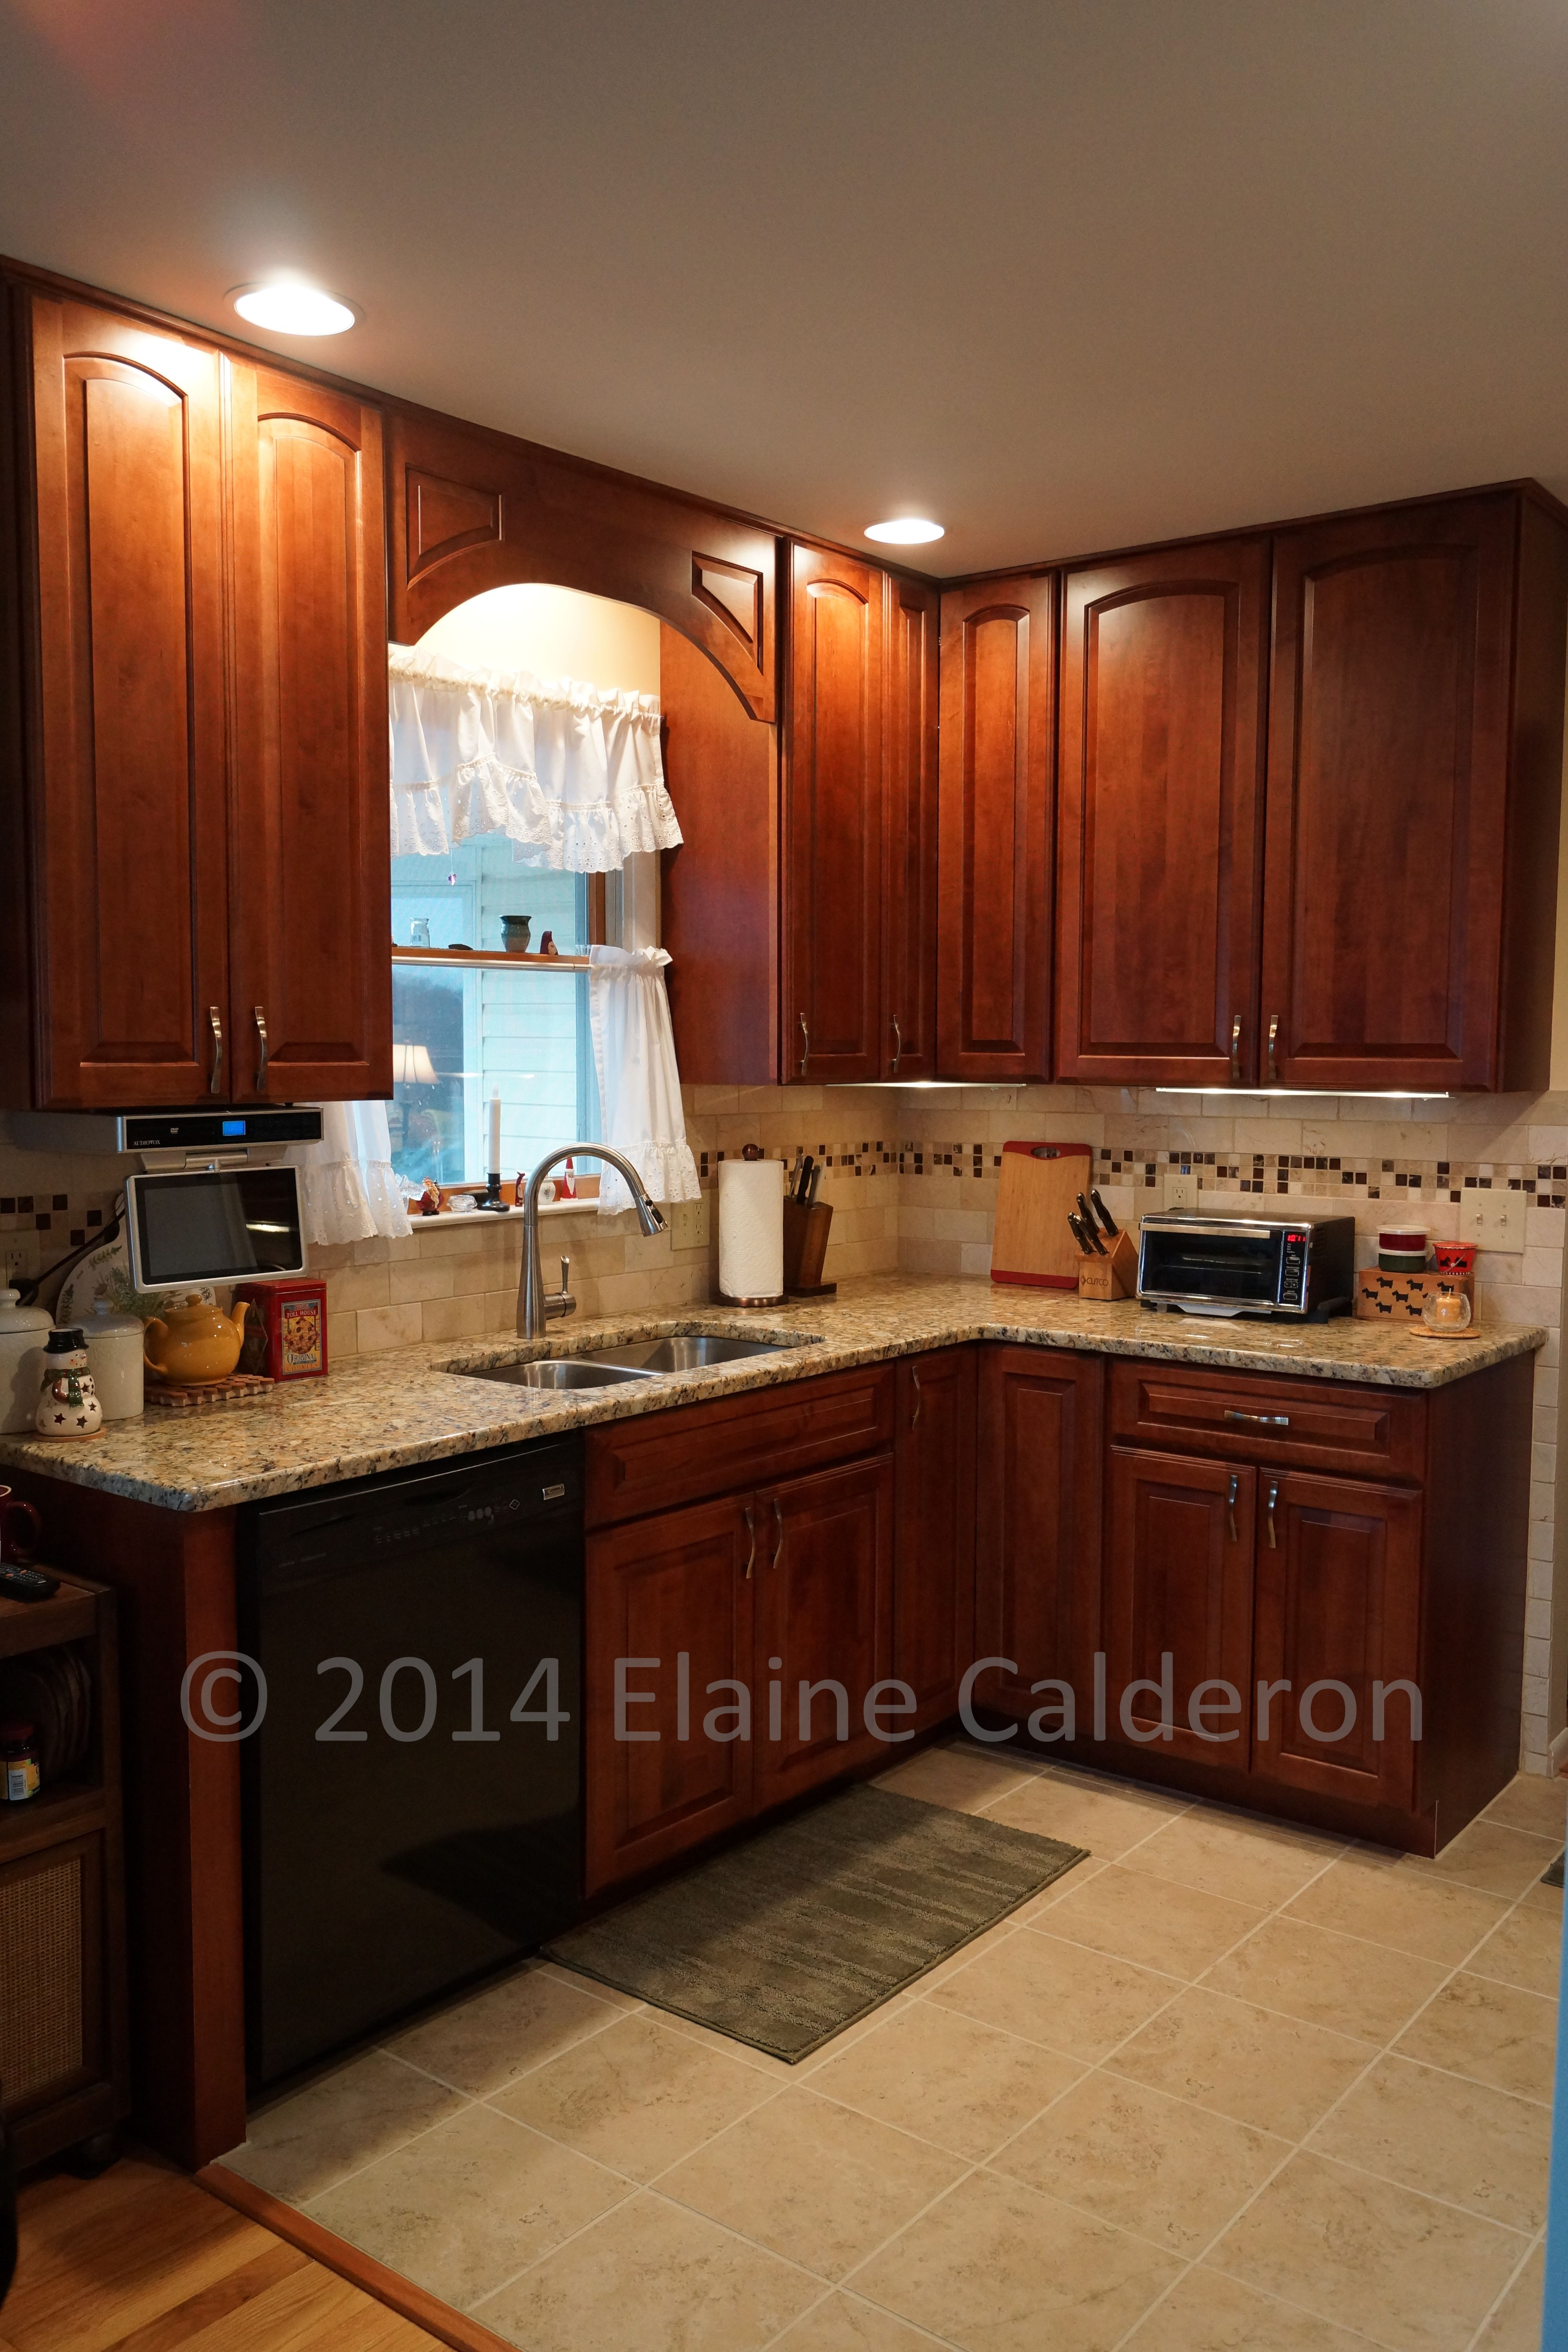 Medallion Gold Cabinetry Windwood Maple Door Rumberry Stained Finish Giallo Napoleon Granite